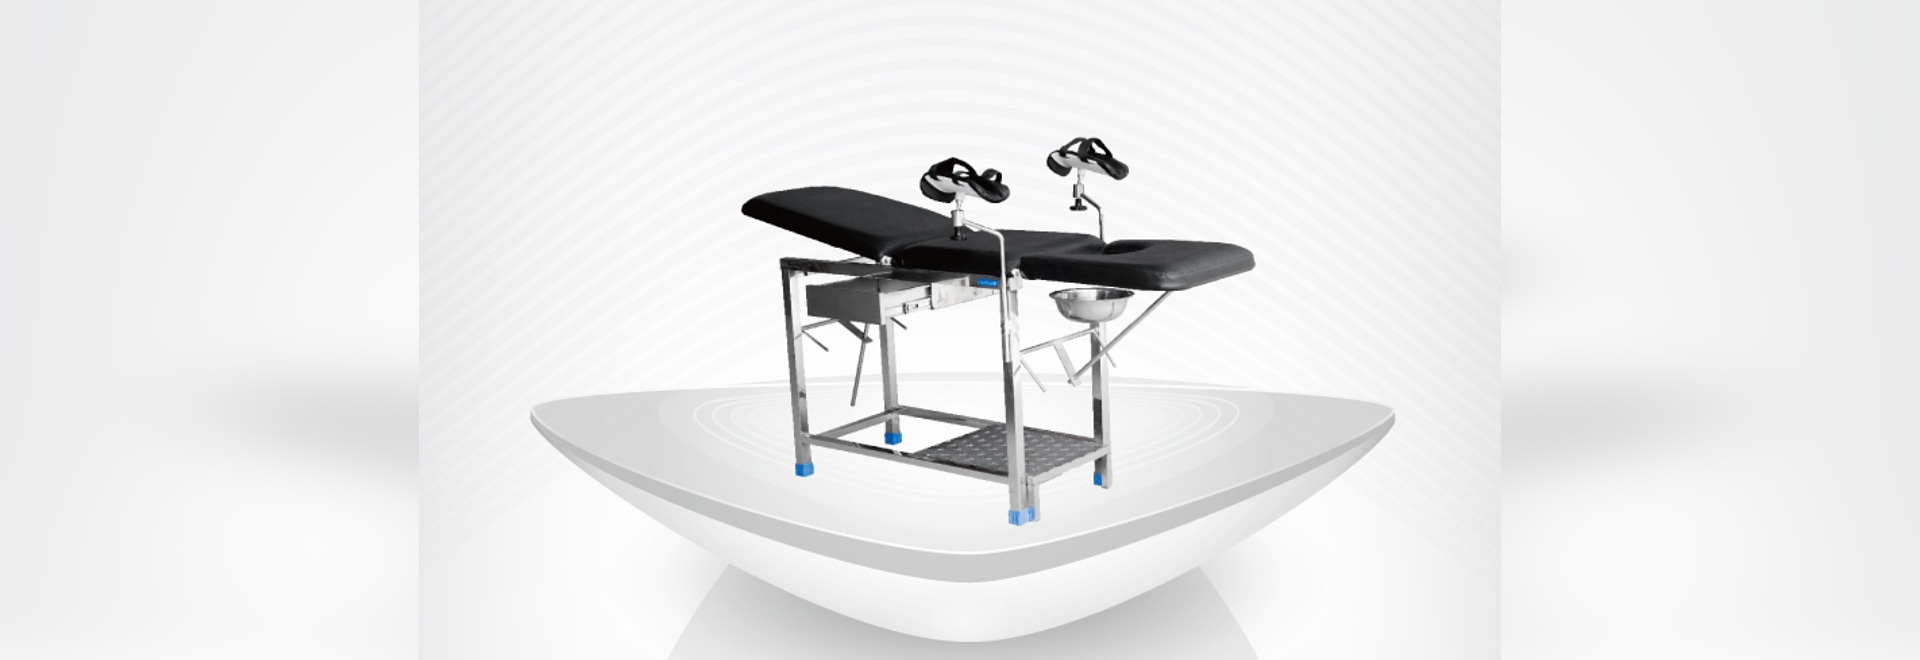 2016 Examination table / hospital bed / for Gynaecology and Obstetrics / stirrups / hamiltion type